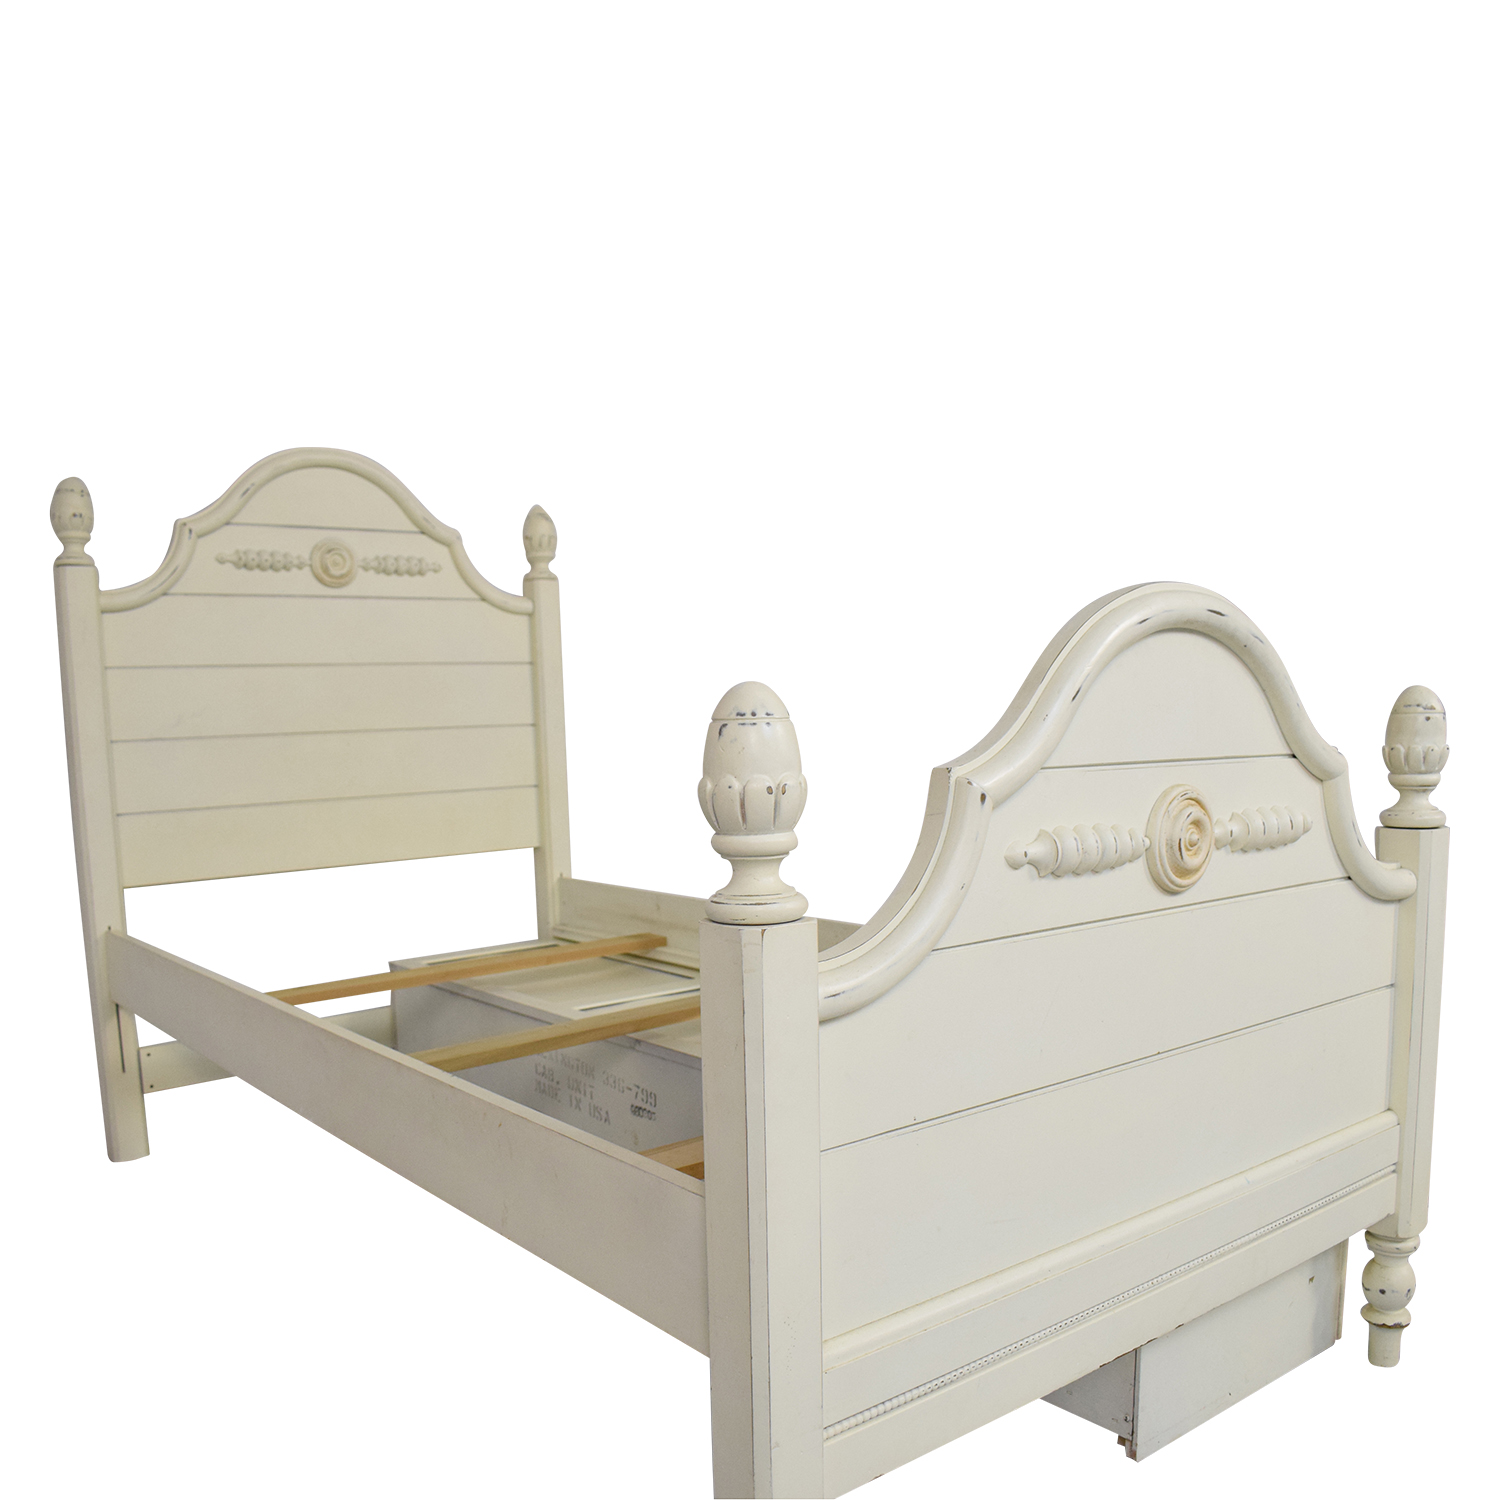 buy Lexington Furniture Distressed Twin Bed with Storage Lexington Furniture Beds